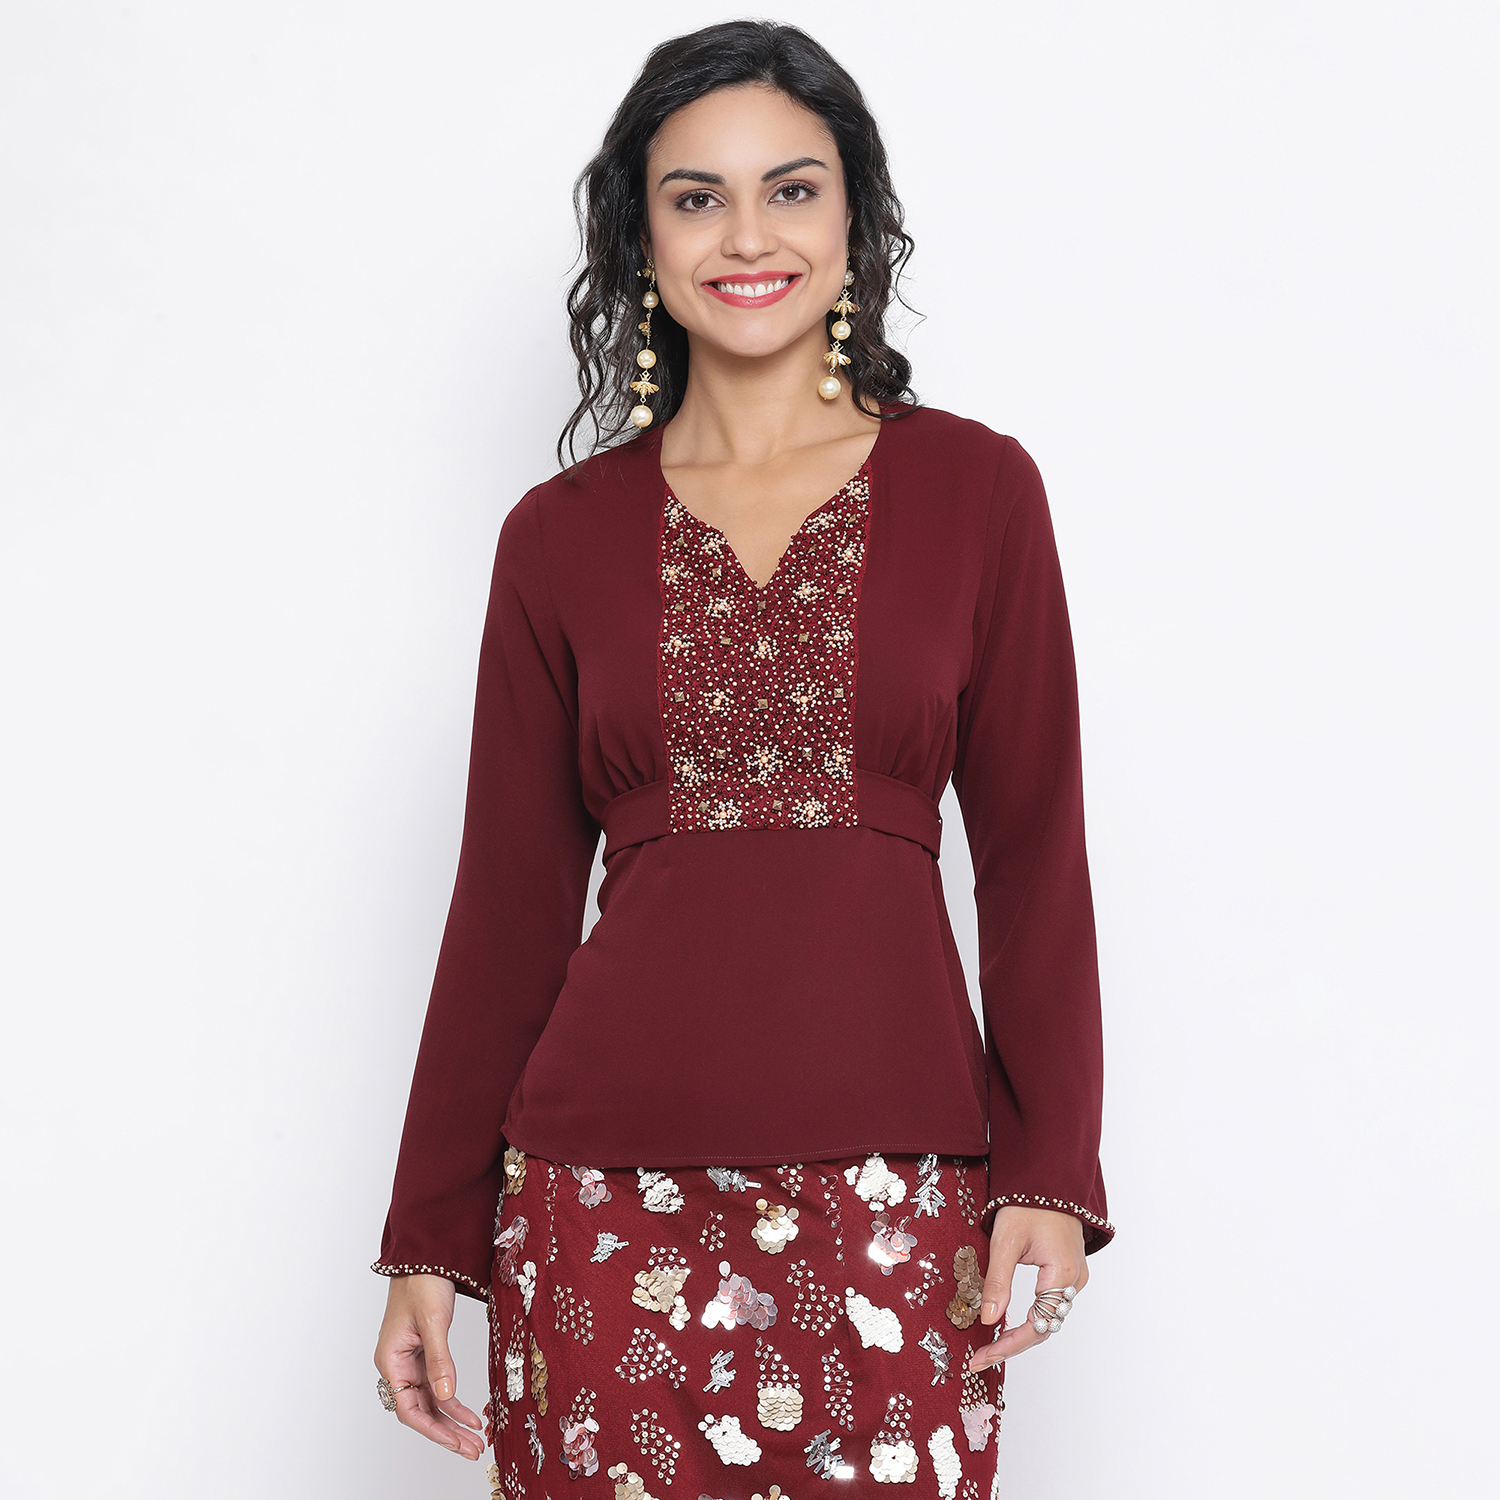 Buy Maroon Top With Emb At Yoke With Back Tie Knot For Women